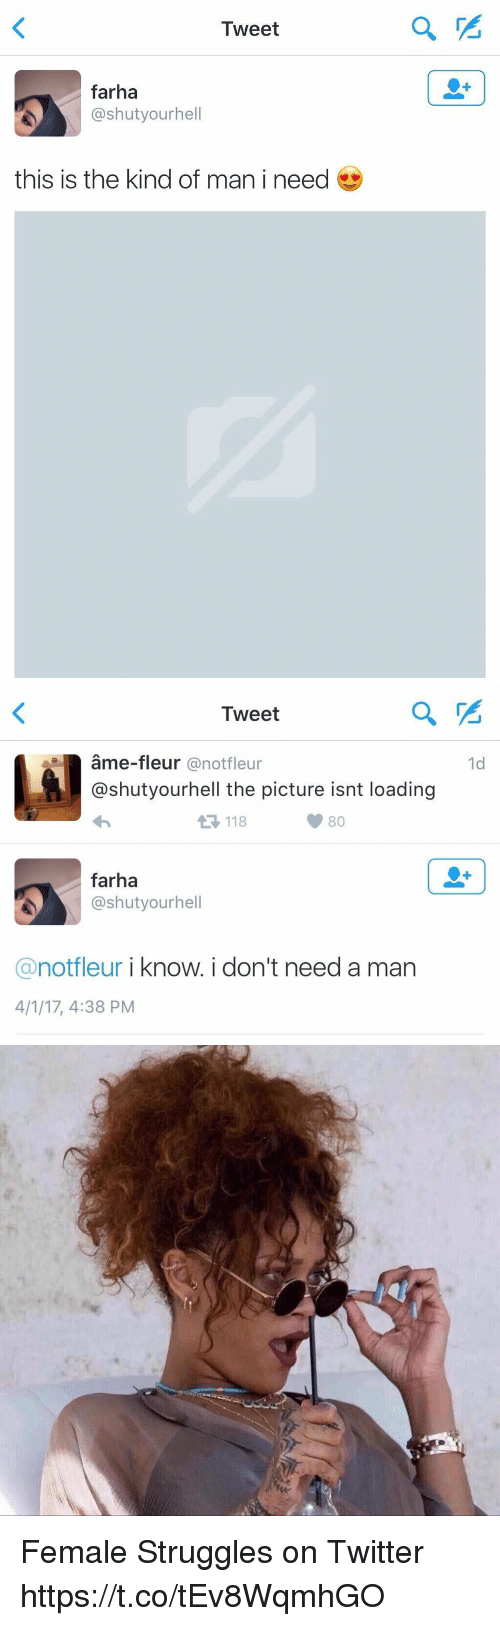 Twitter, Girl Memes, and Man: Tweet  farha  @shutyourhell  this is the kind of man i need   Tweet  1d  ame-fleur @notfleur  @shutyourhell the picture isnt loading  118  farha  @shutyourhell  @notfleur i know.i don't need a man  4/1/17, 4:38 PM Female Struggles on Twitter https://t.co/tEv8WqmhGO